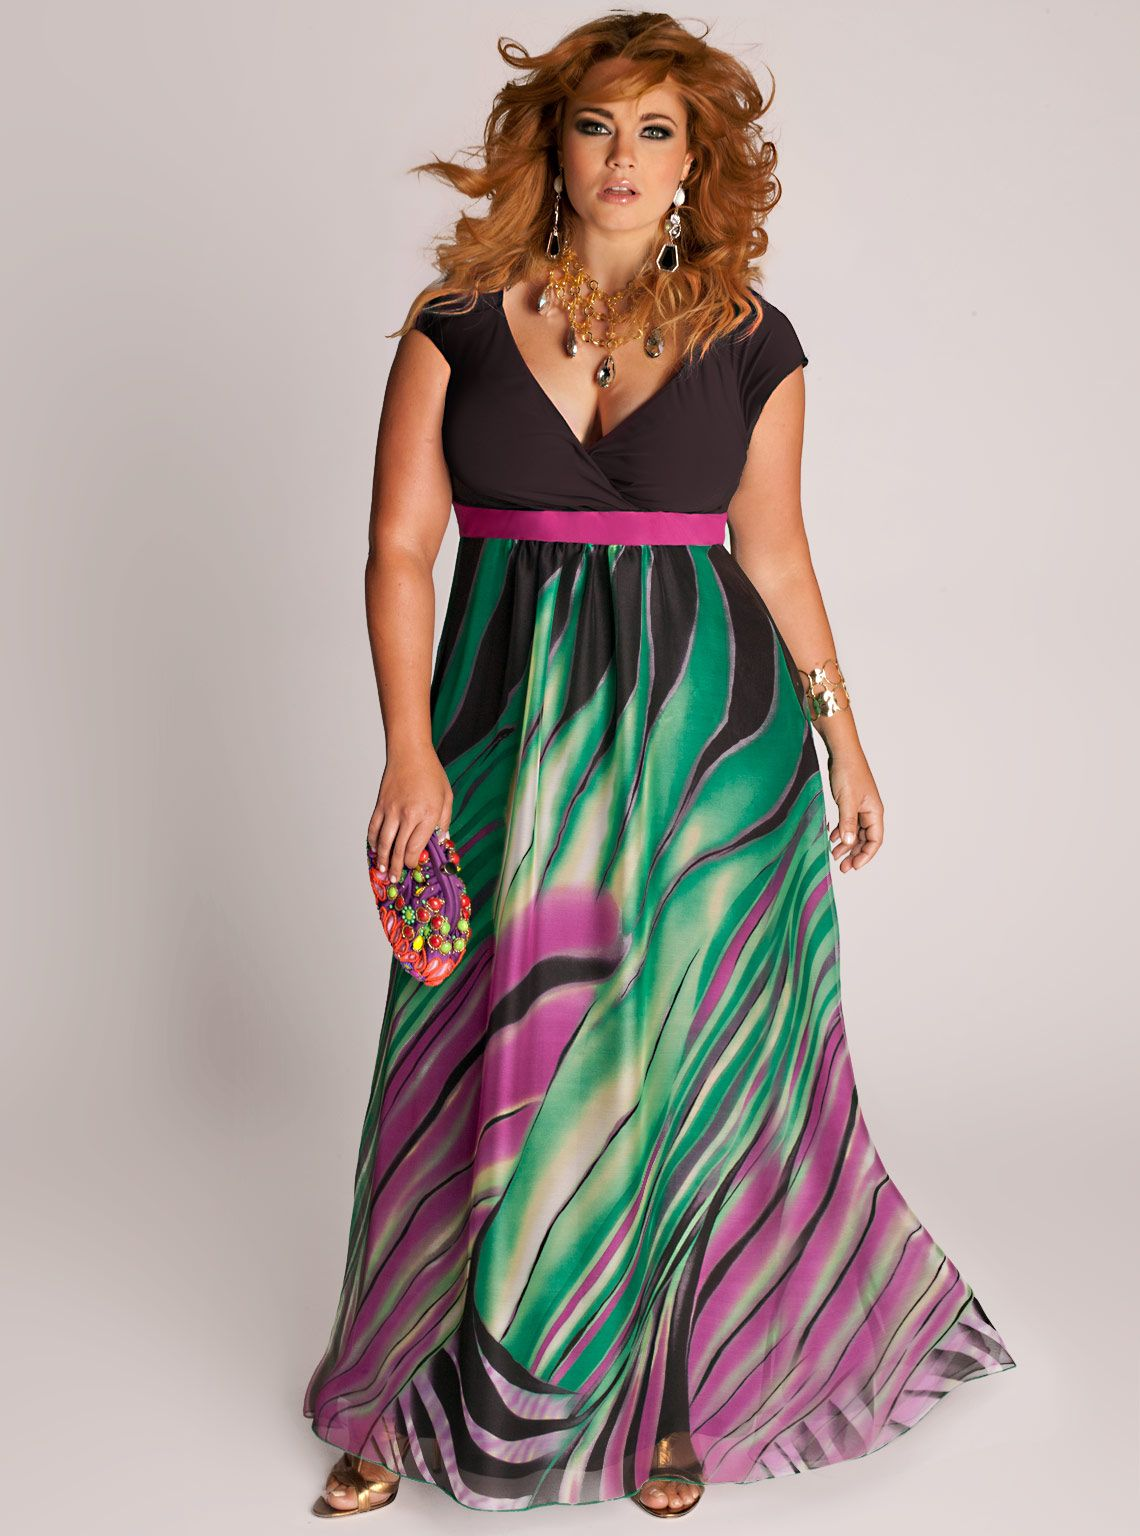 Rain Forest Maxi Dress- IGIGI | Curves Deserve Fashion | Pinterest ...